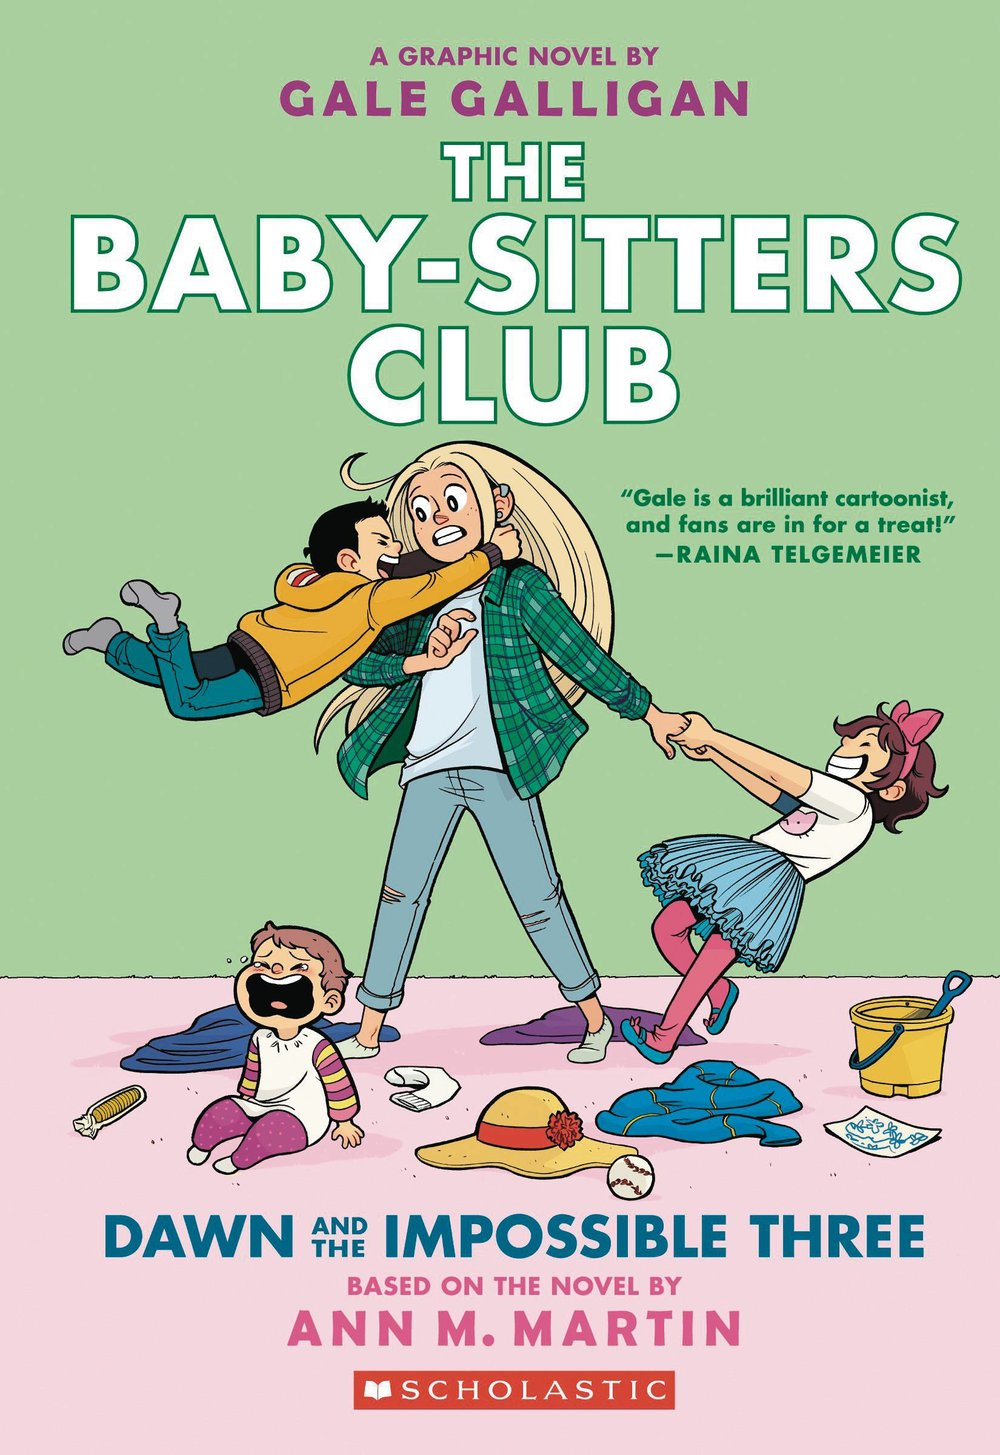 BABY SITTERS CLUB COLOR ED GN 5 DAWN IMPOSSIBLE 3.jpg